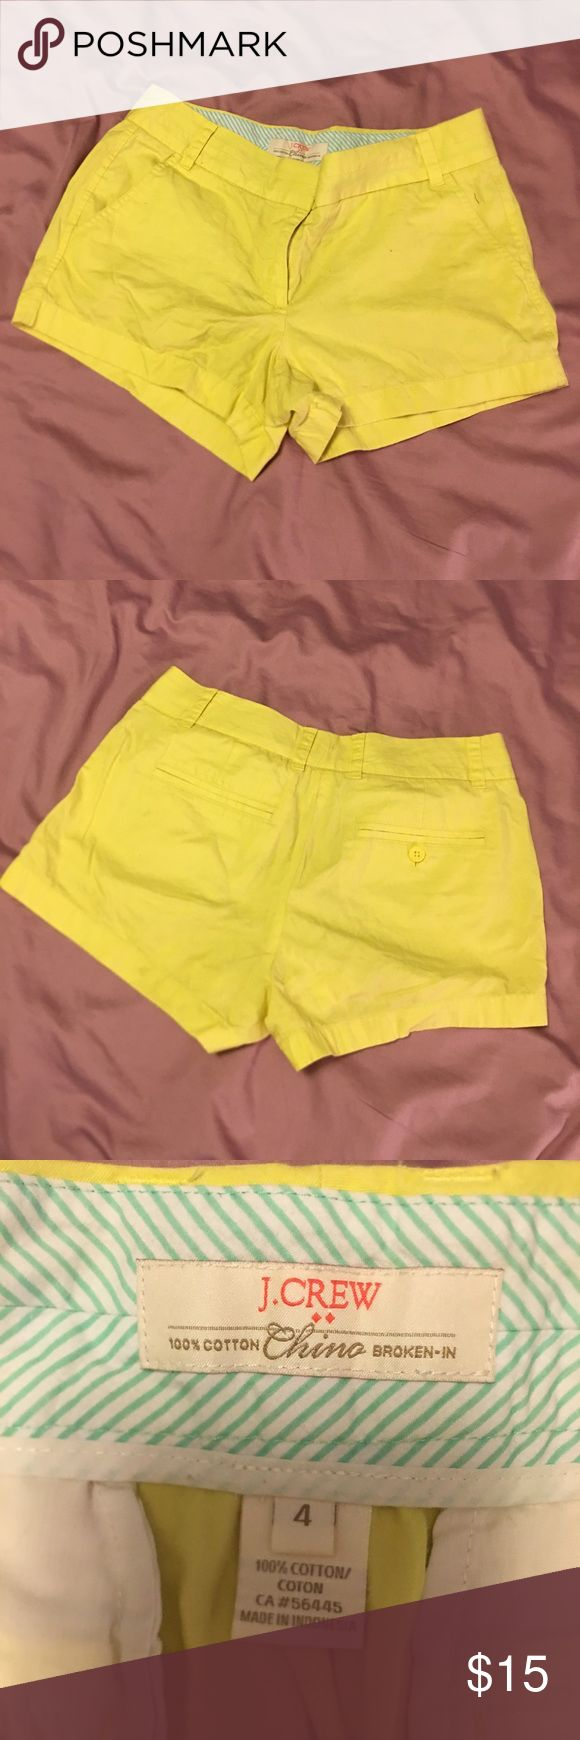 J.Crew Neon Yellow shorts. Size 4 ✨CLOSET CLEAROUT✨J.Crew Neon Yellow shorts. Size 4. J. Crew Shorts